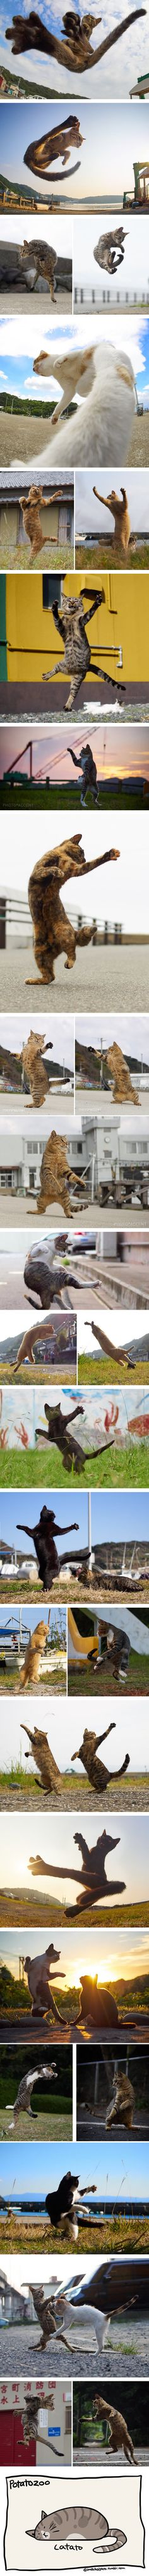 Purrfectly timed cat photos taken at the right meowment like they knew kungfu